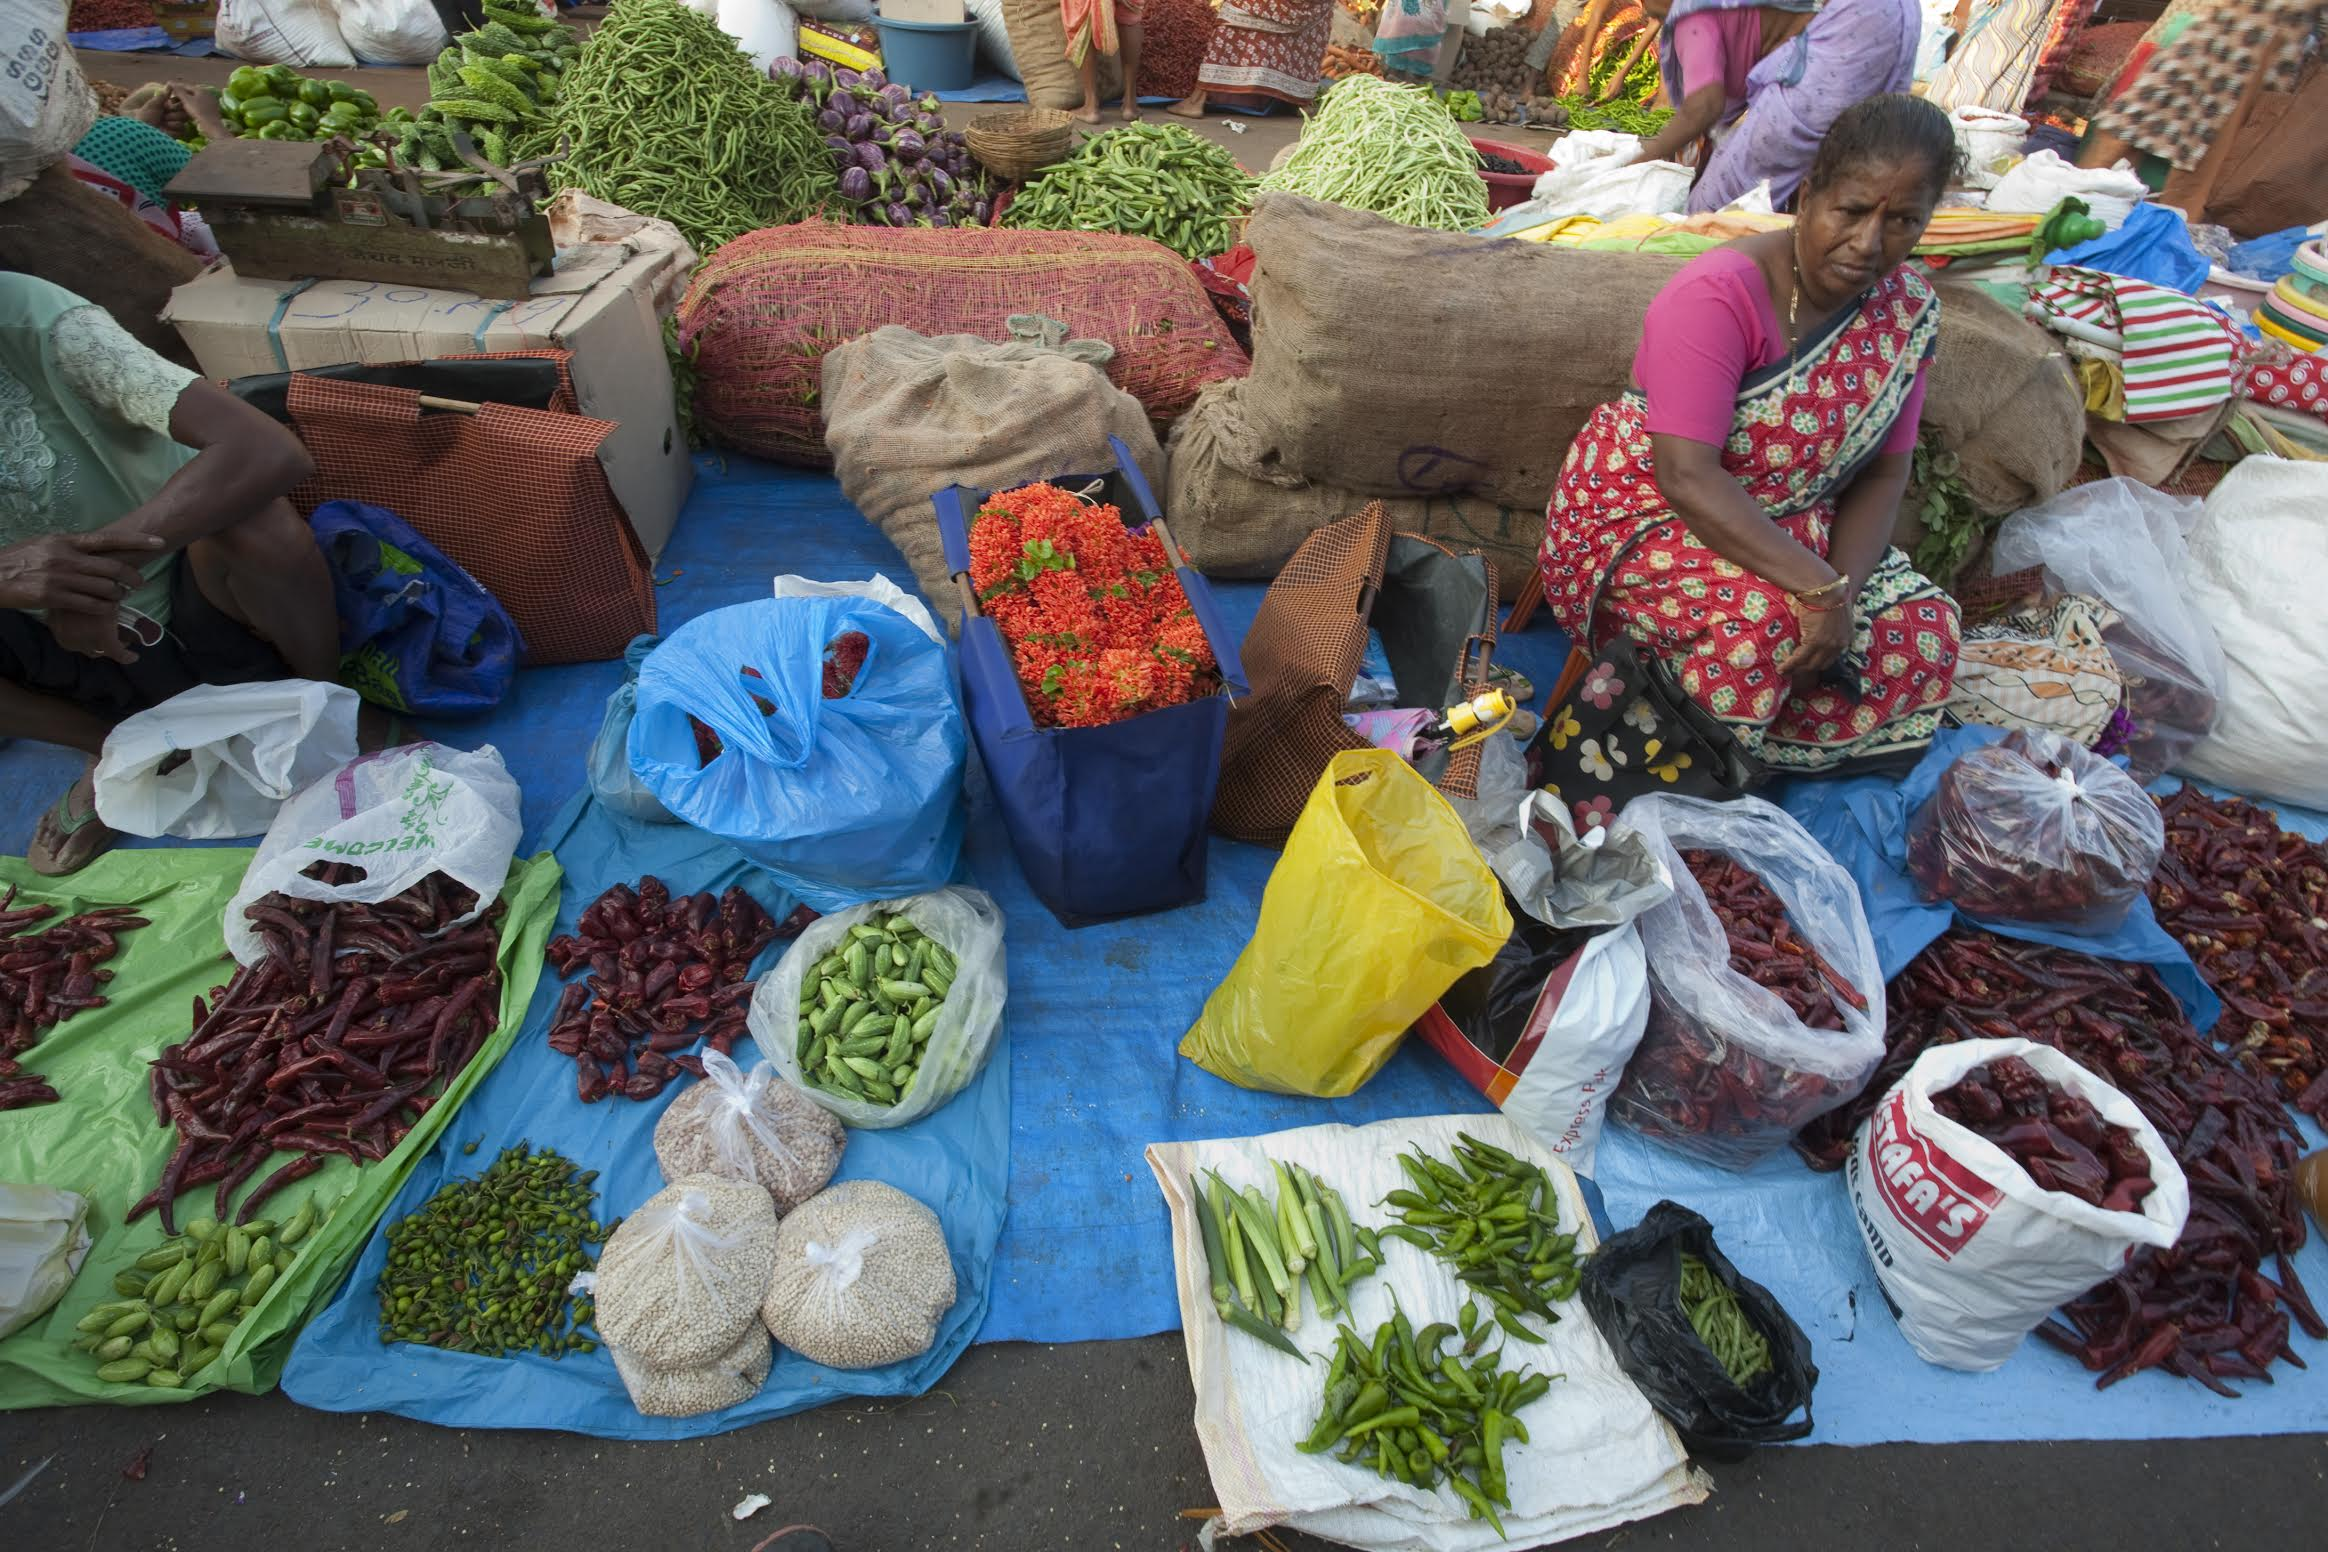 A woman selling chillies and vegetables at Mapusa market. Photo credit: Assavri Kulkarn